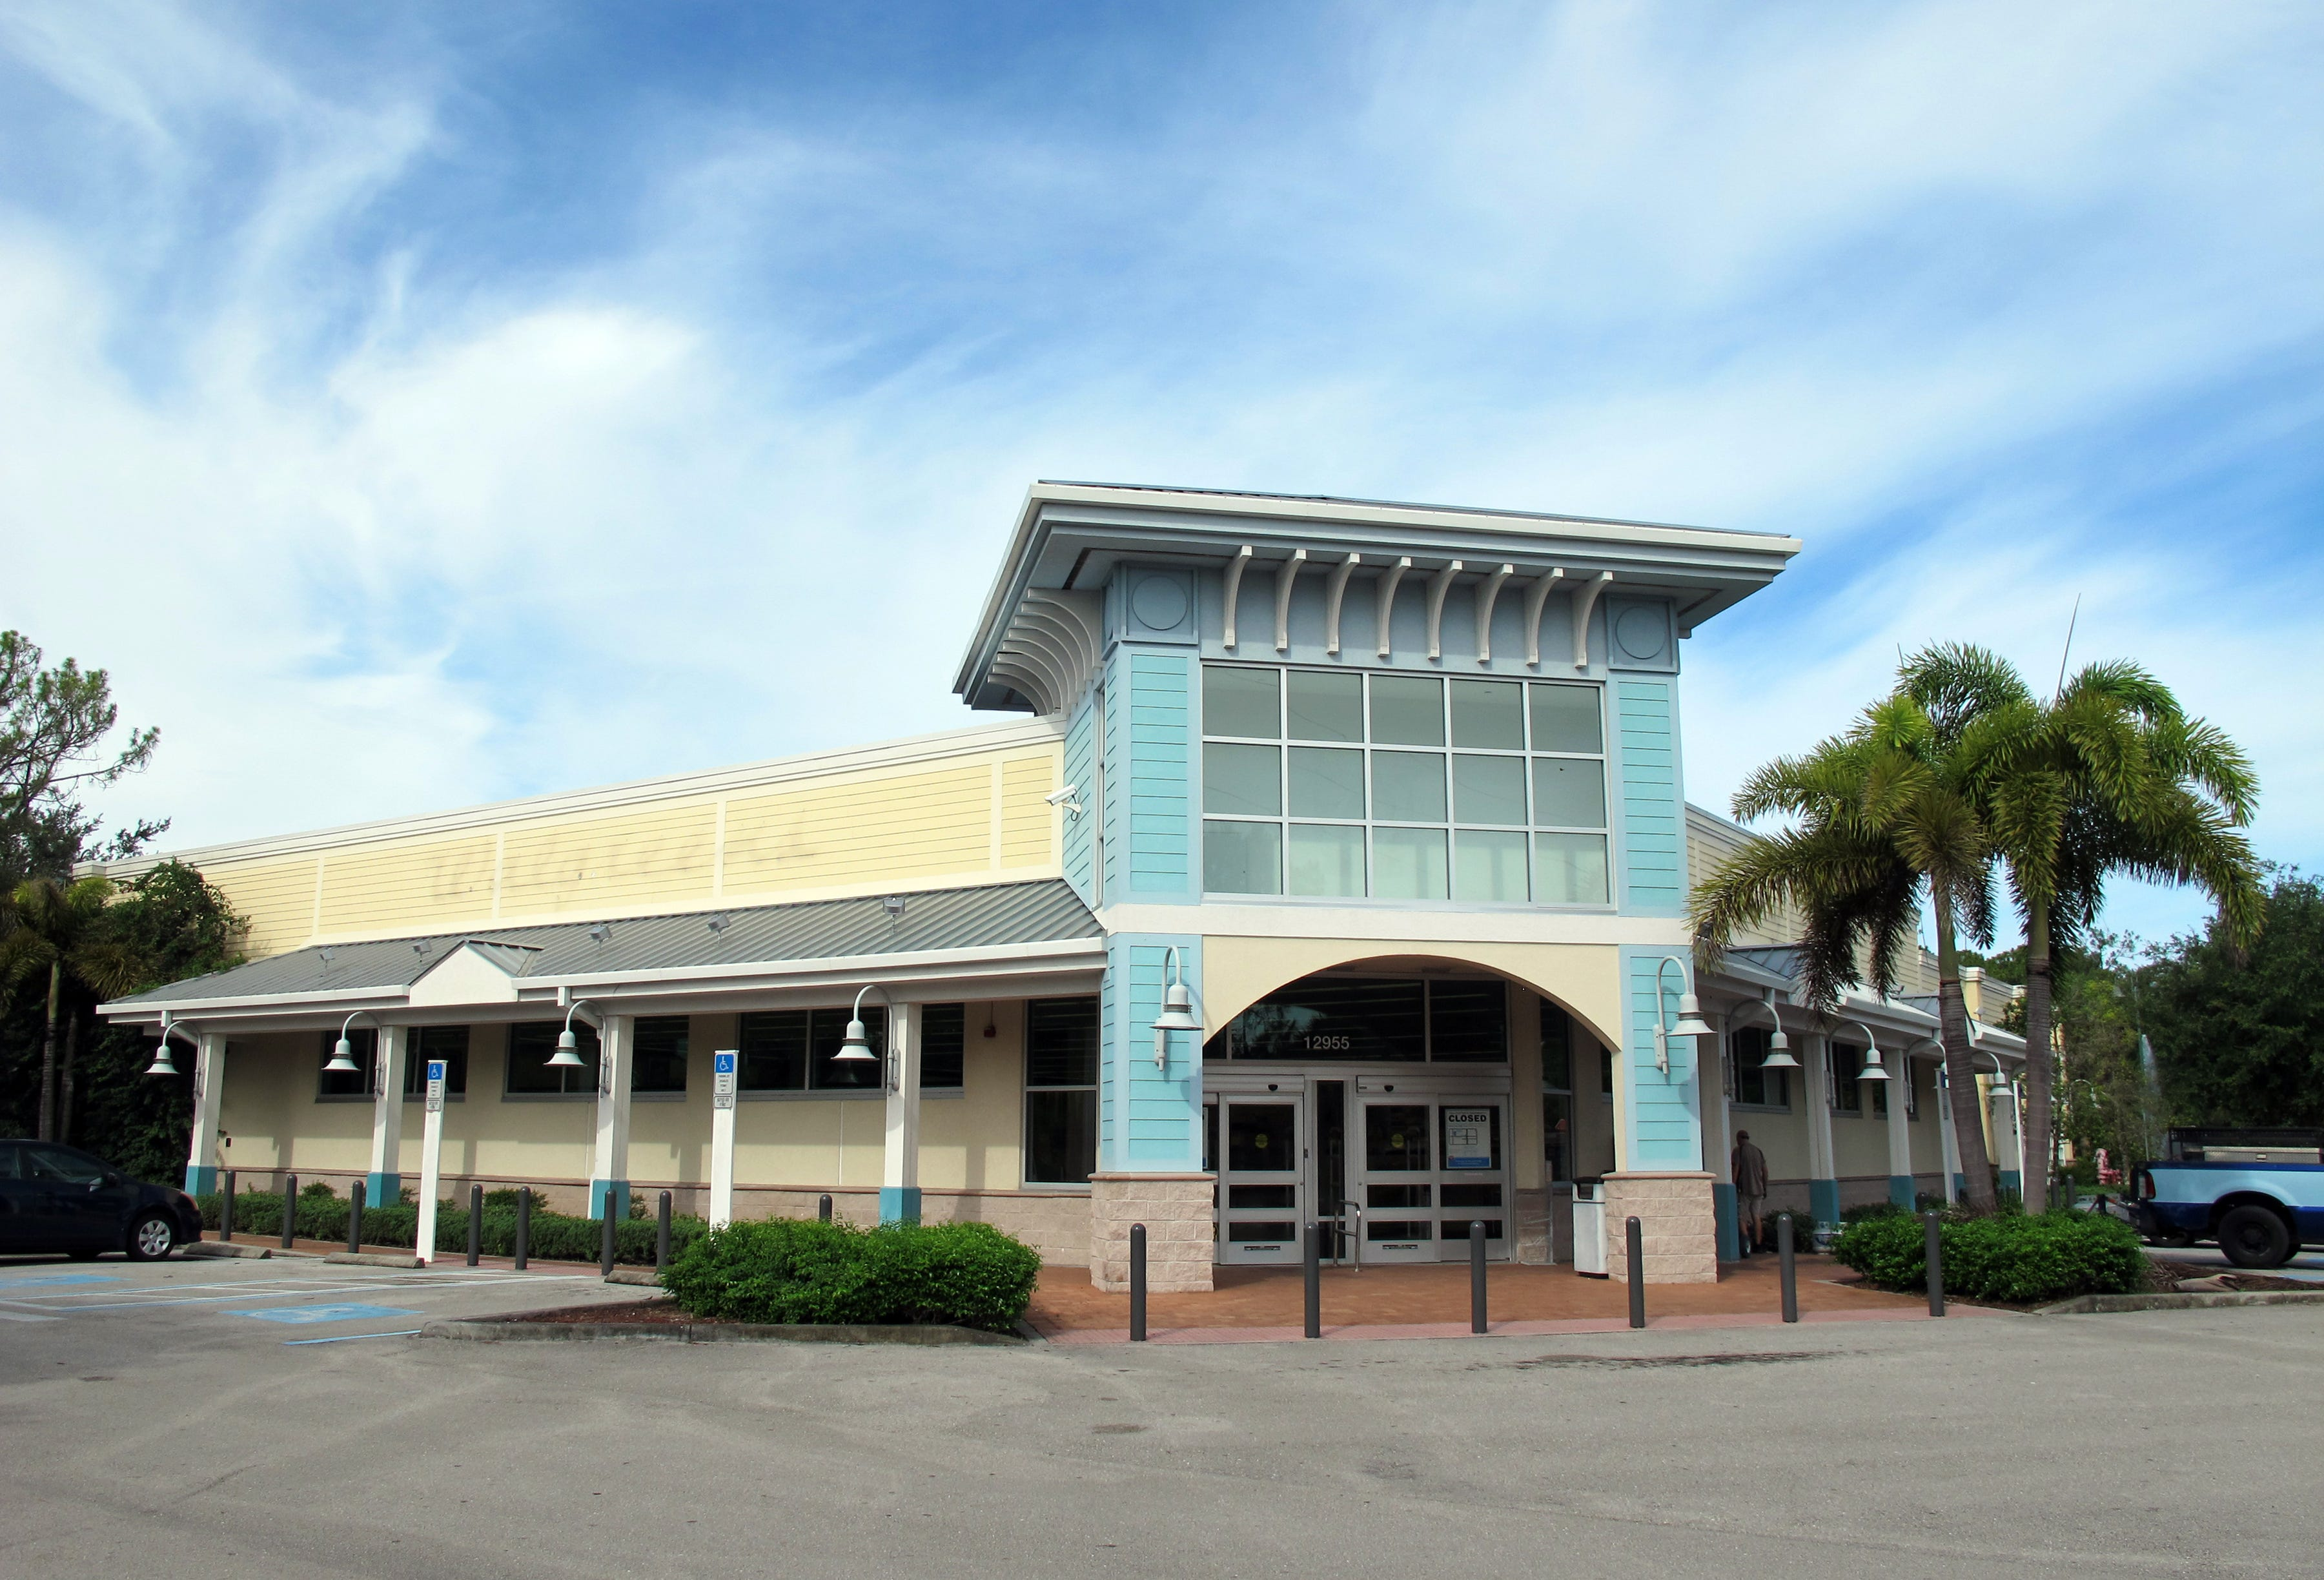 The Walgreens Store Permanently Closed In The Publix Anchored